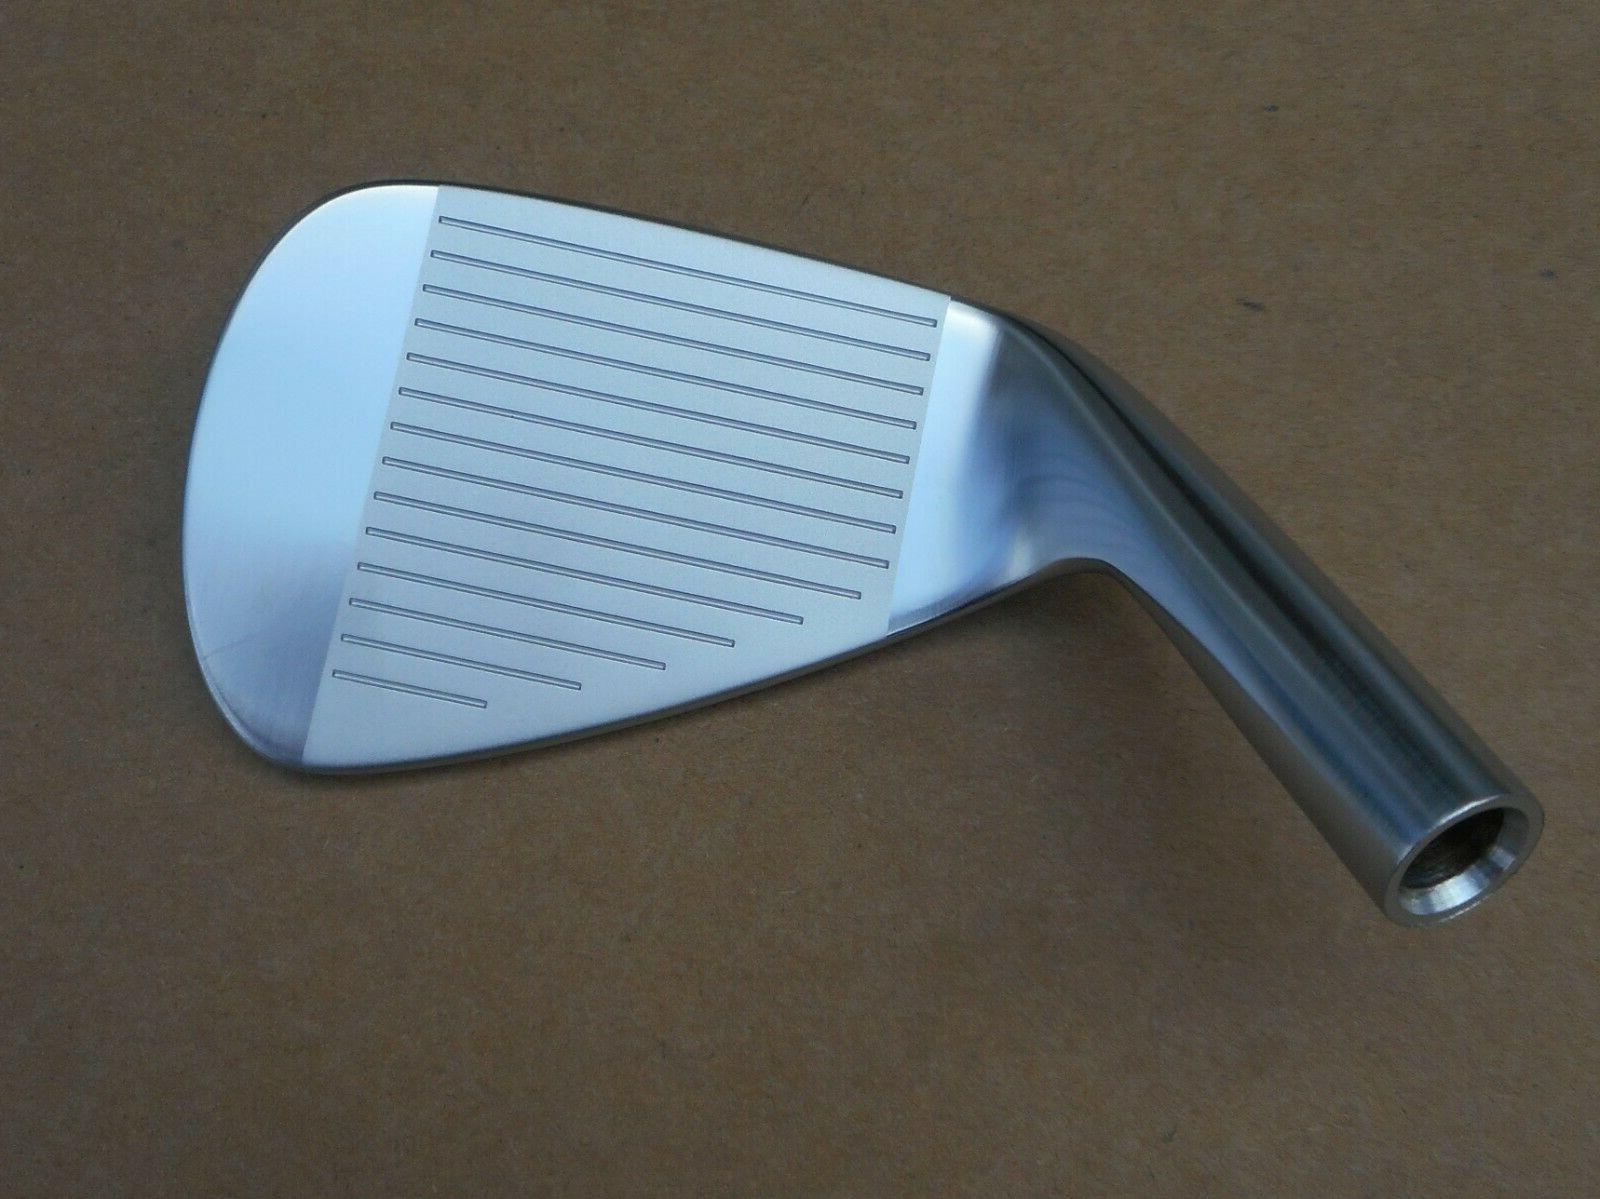 MB-001 3, 5 iron Tournament